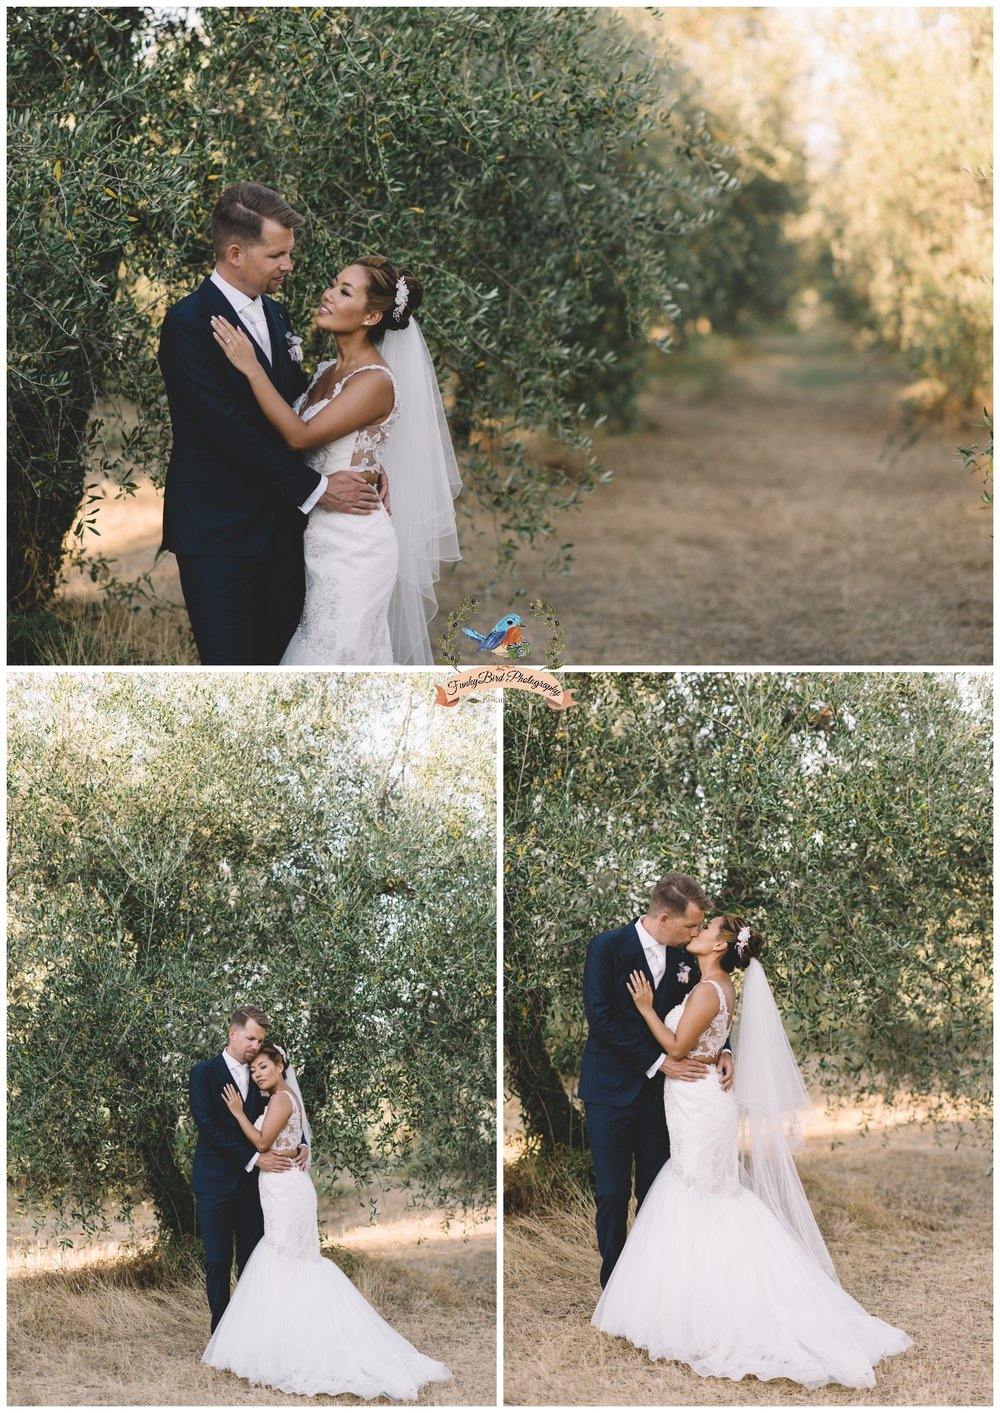 Wedding Photographer in Tuscany, Wedding Photographer in Florence, Wedding Photographer Siena, Italian Wedding Photographer